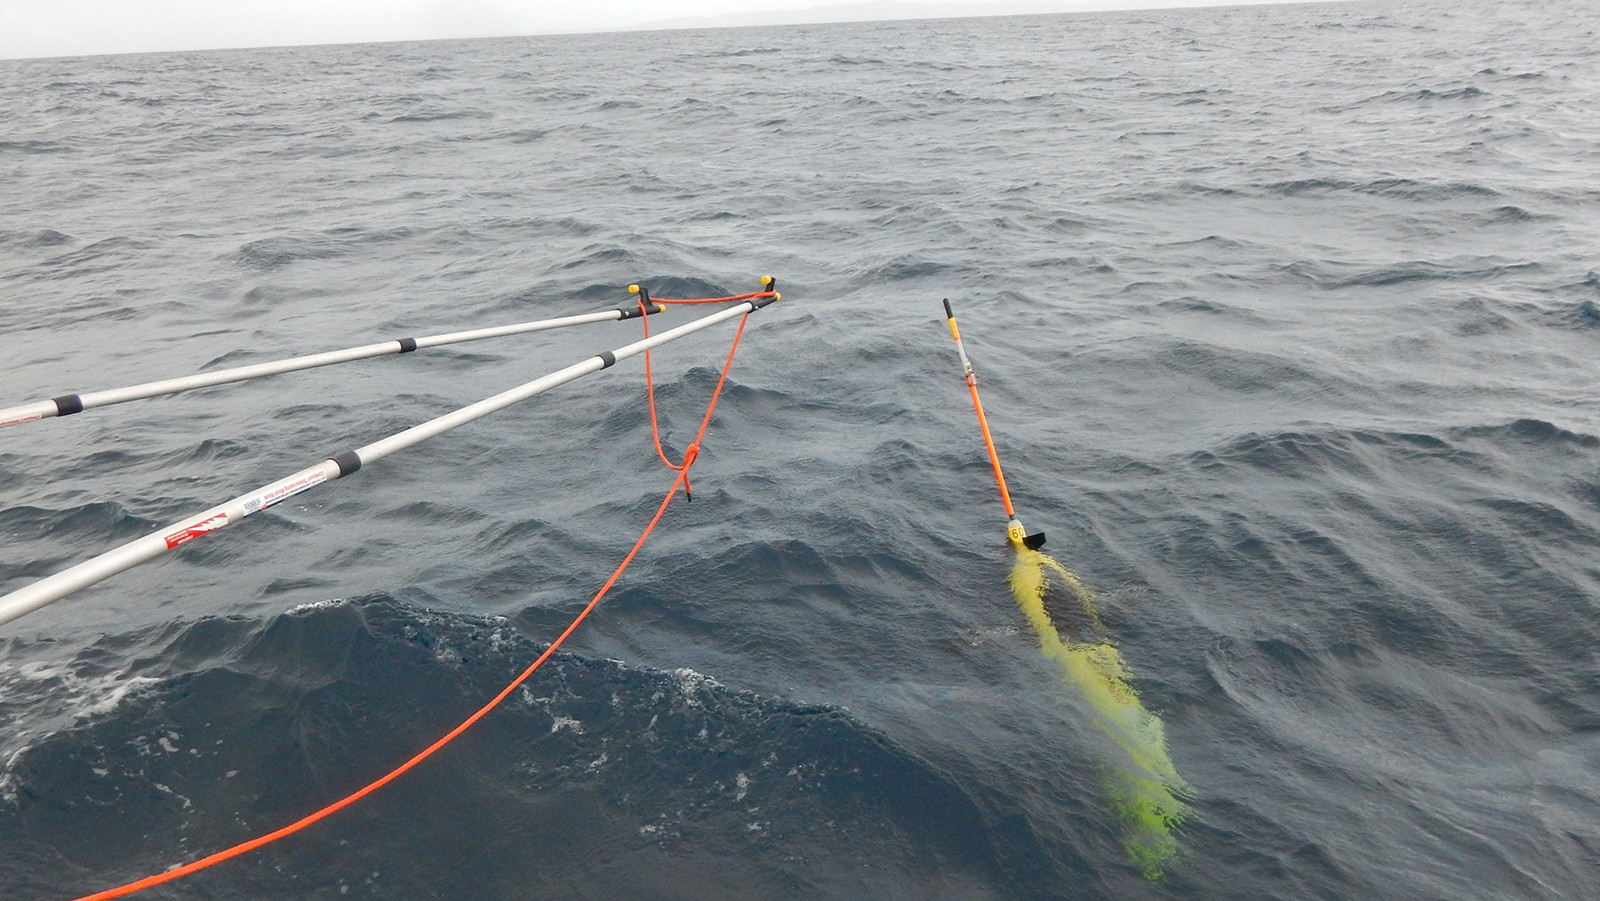 Underwater glider being recovered in the Caribbean Sea. Image Credit: NOAA